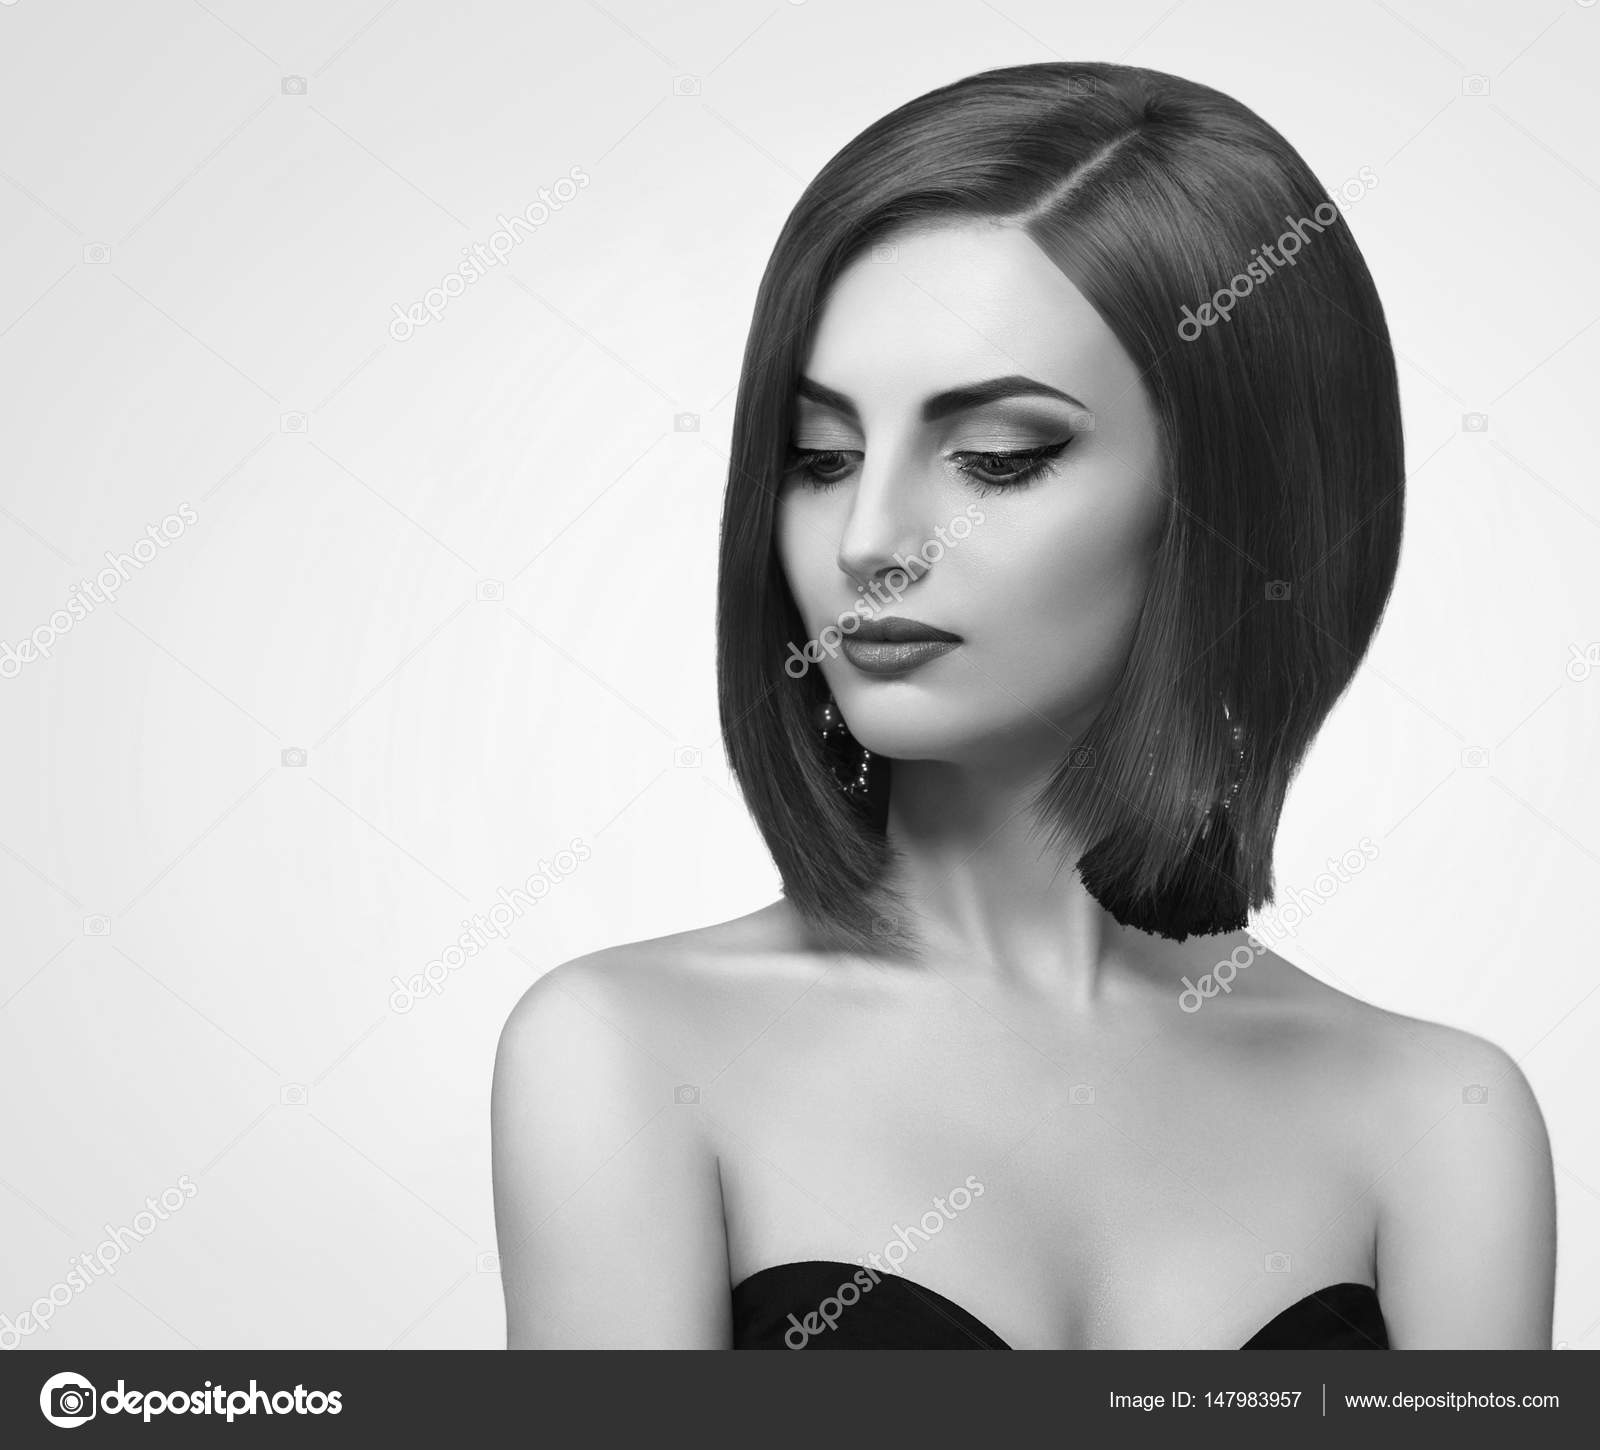 Black and white studio shots of a classy young woman with short stock image